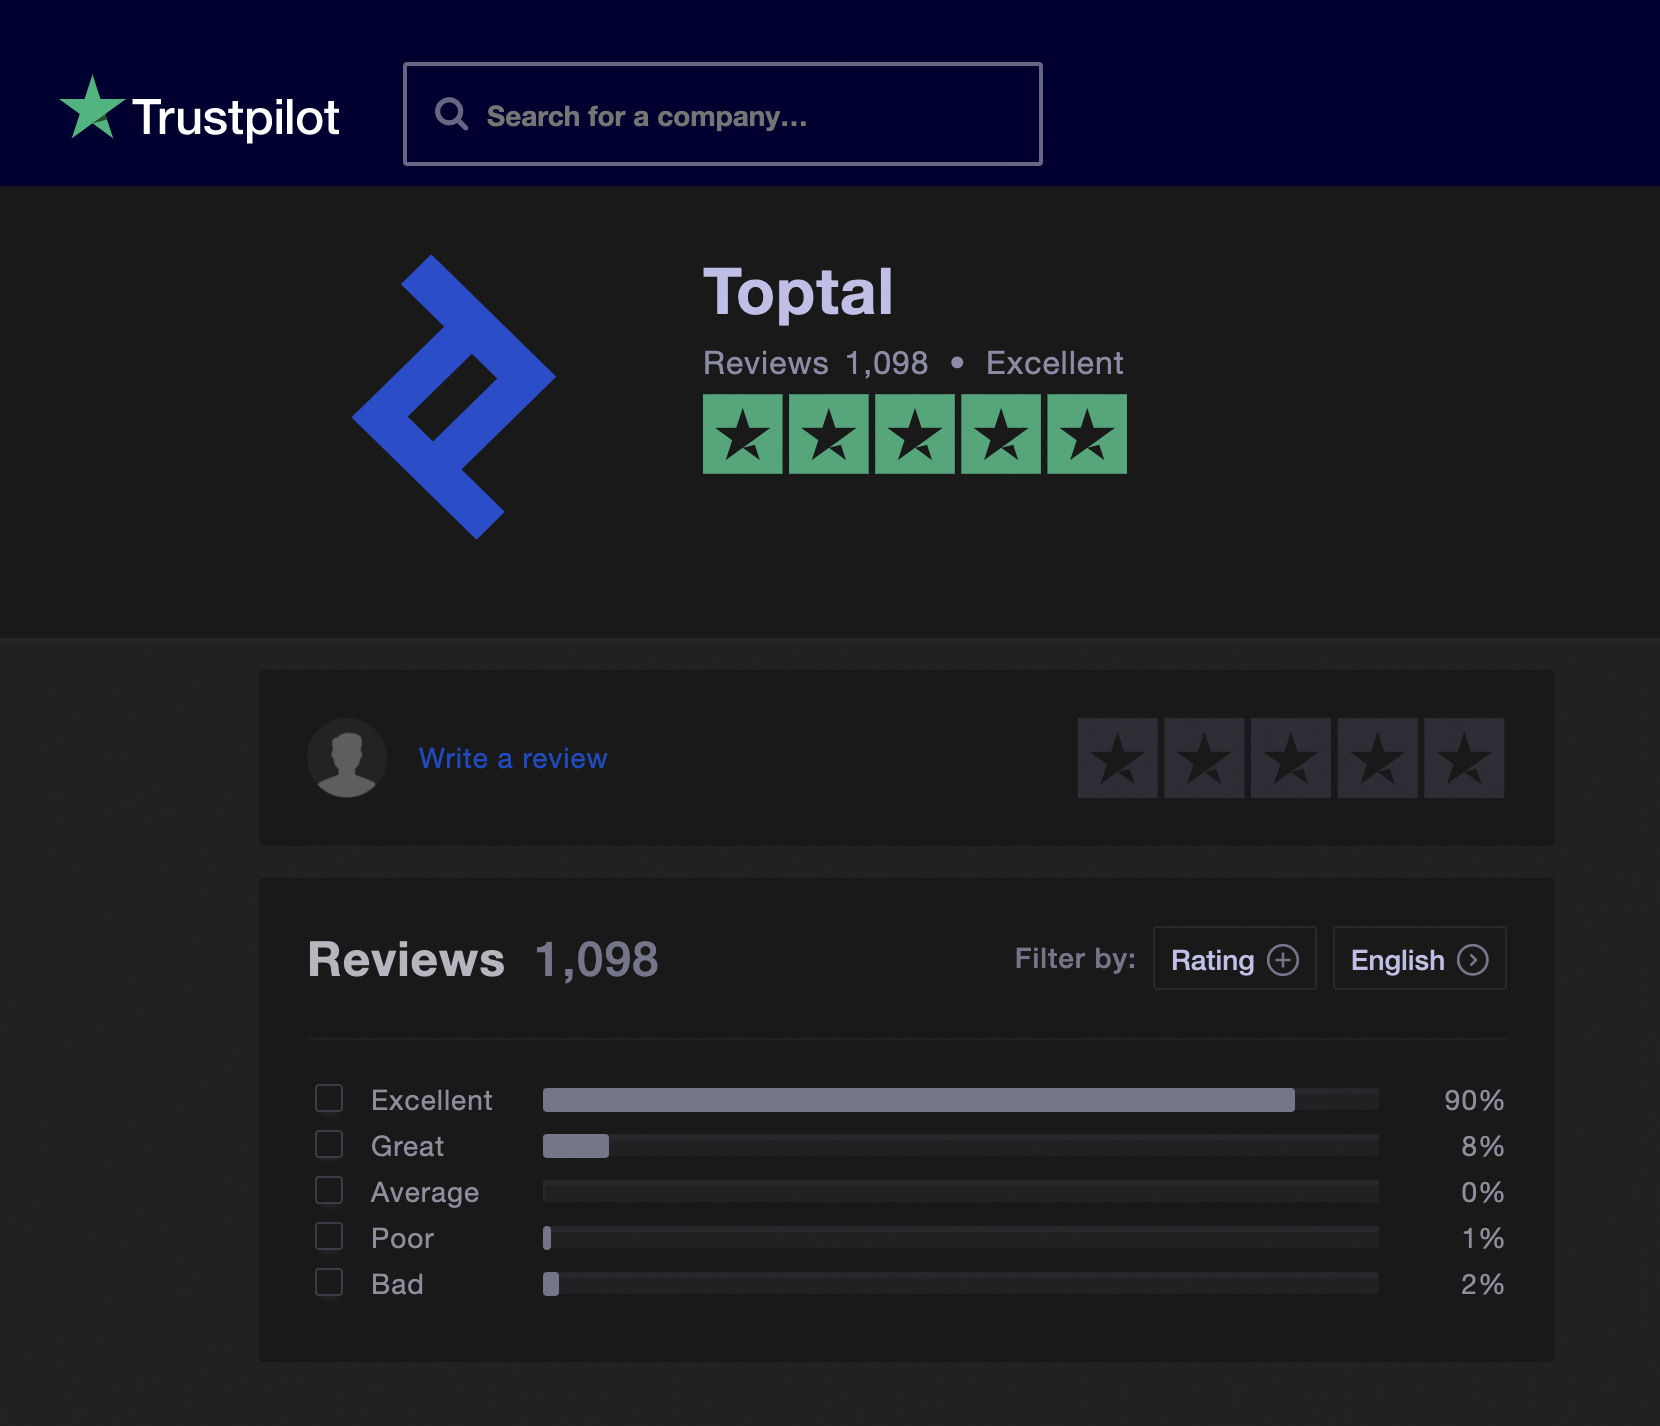 Toptal - reviews from real customers